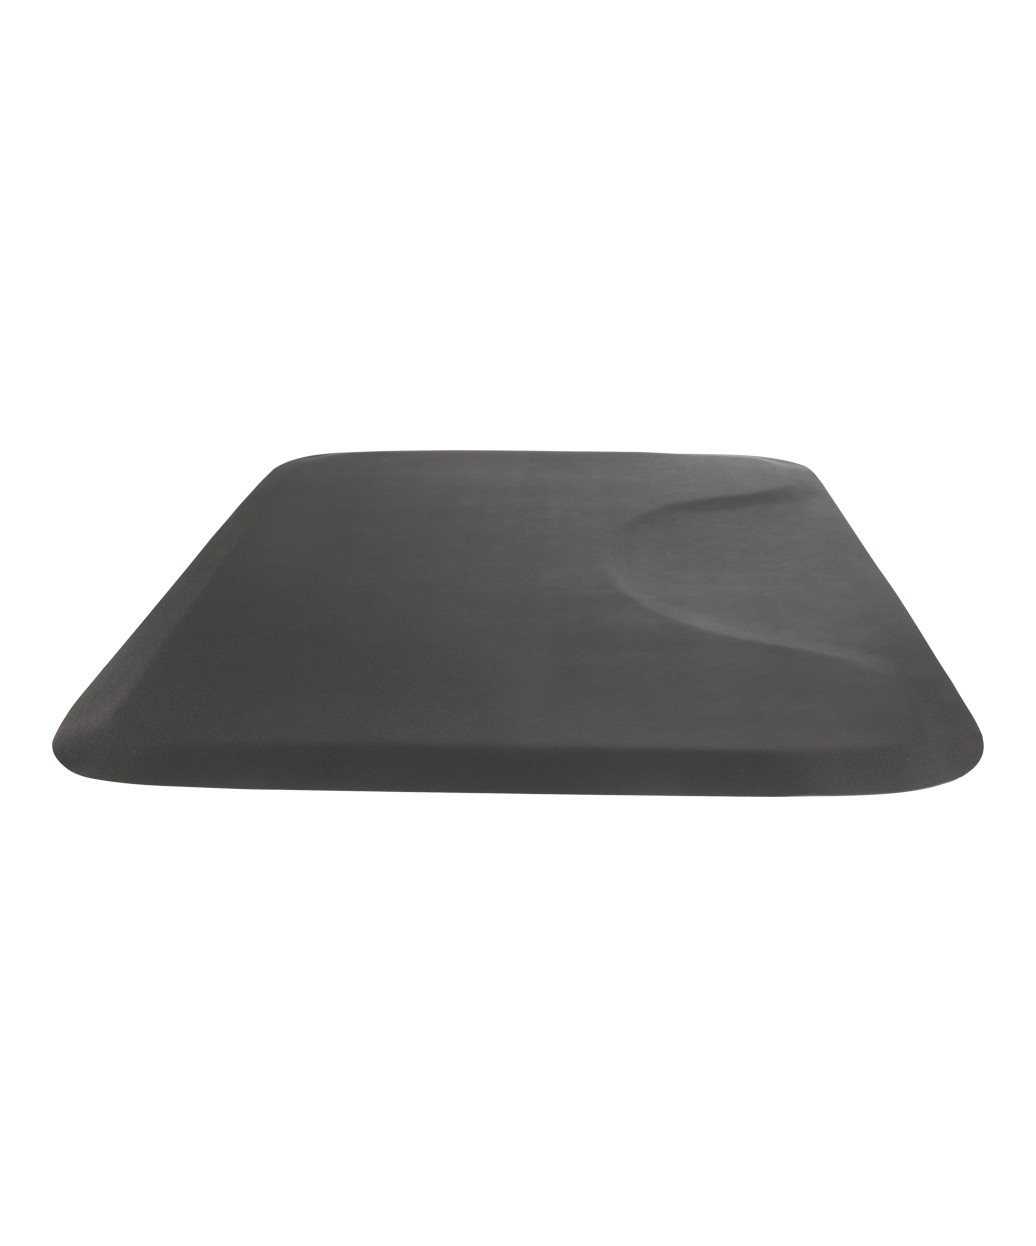 floor mats prevent salon dgvjiwgl mat fatigue excellent how the and solution best choose to